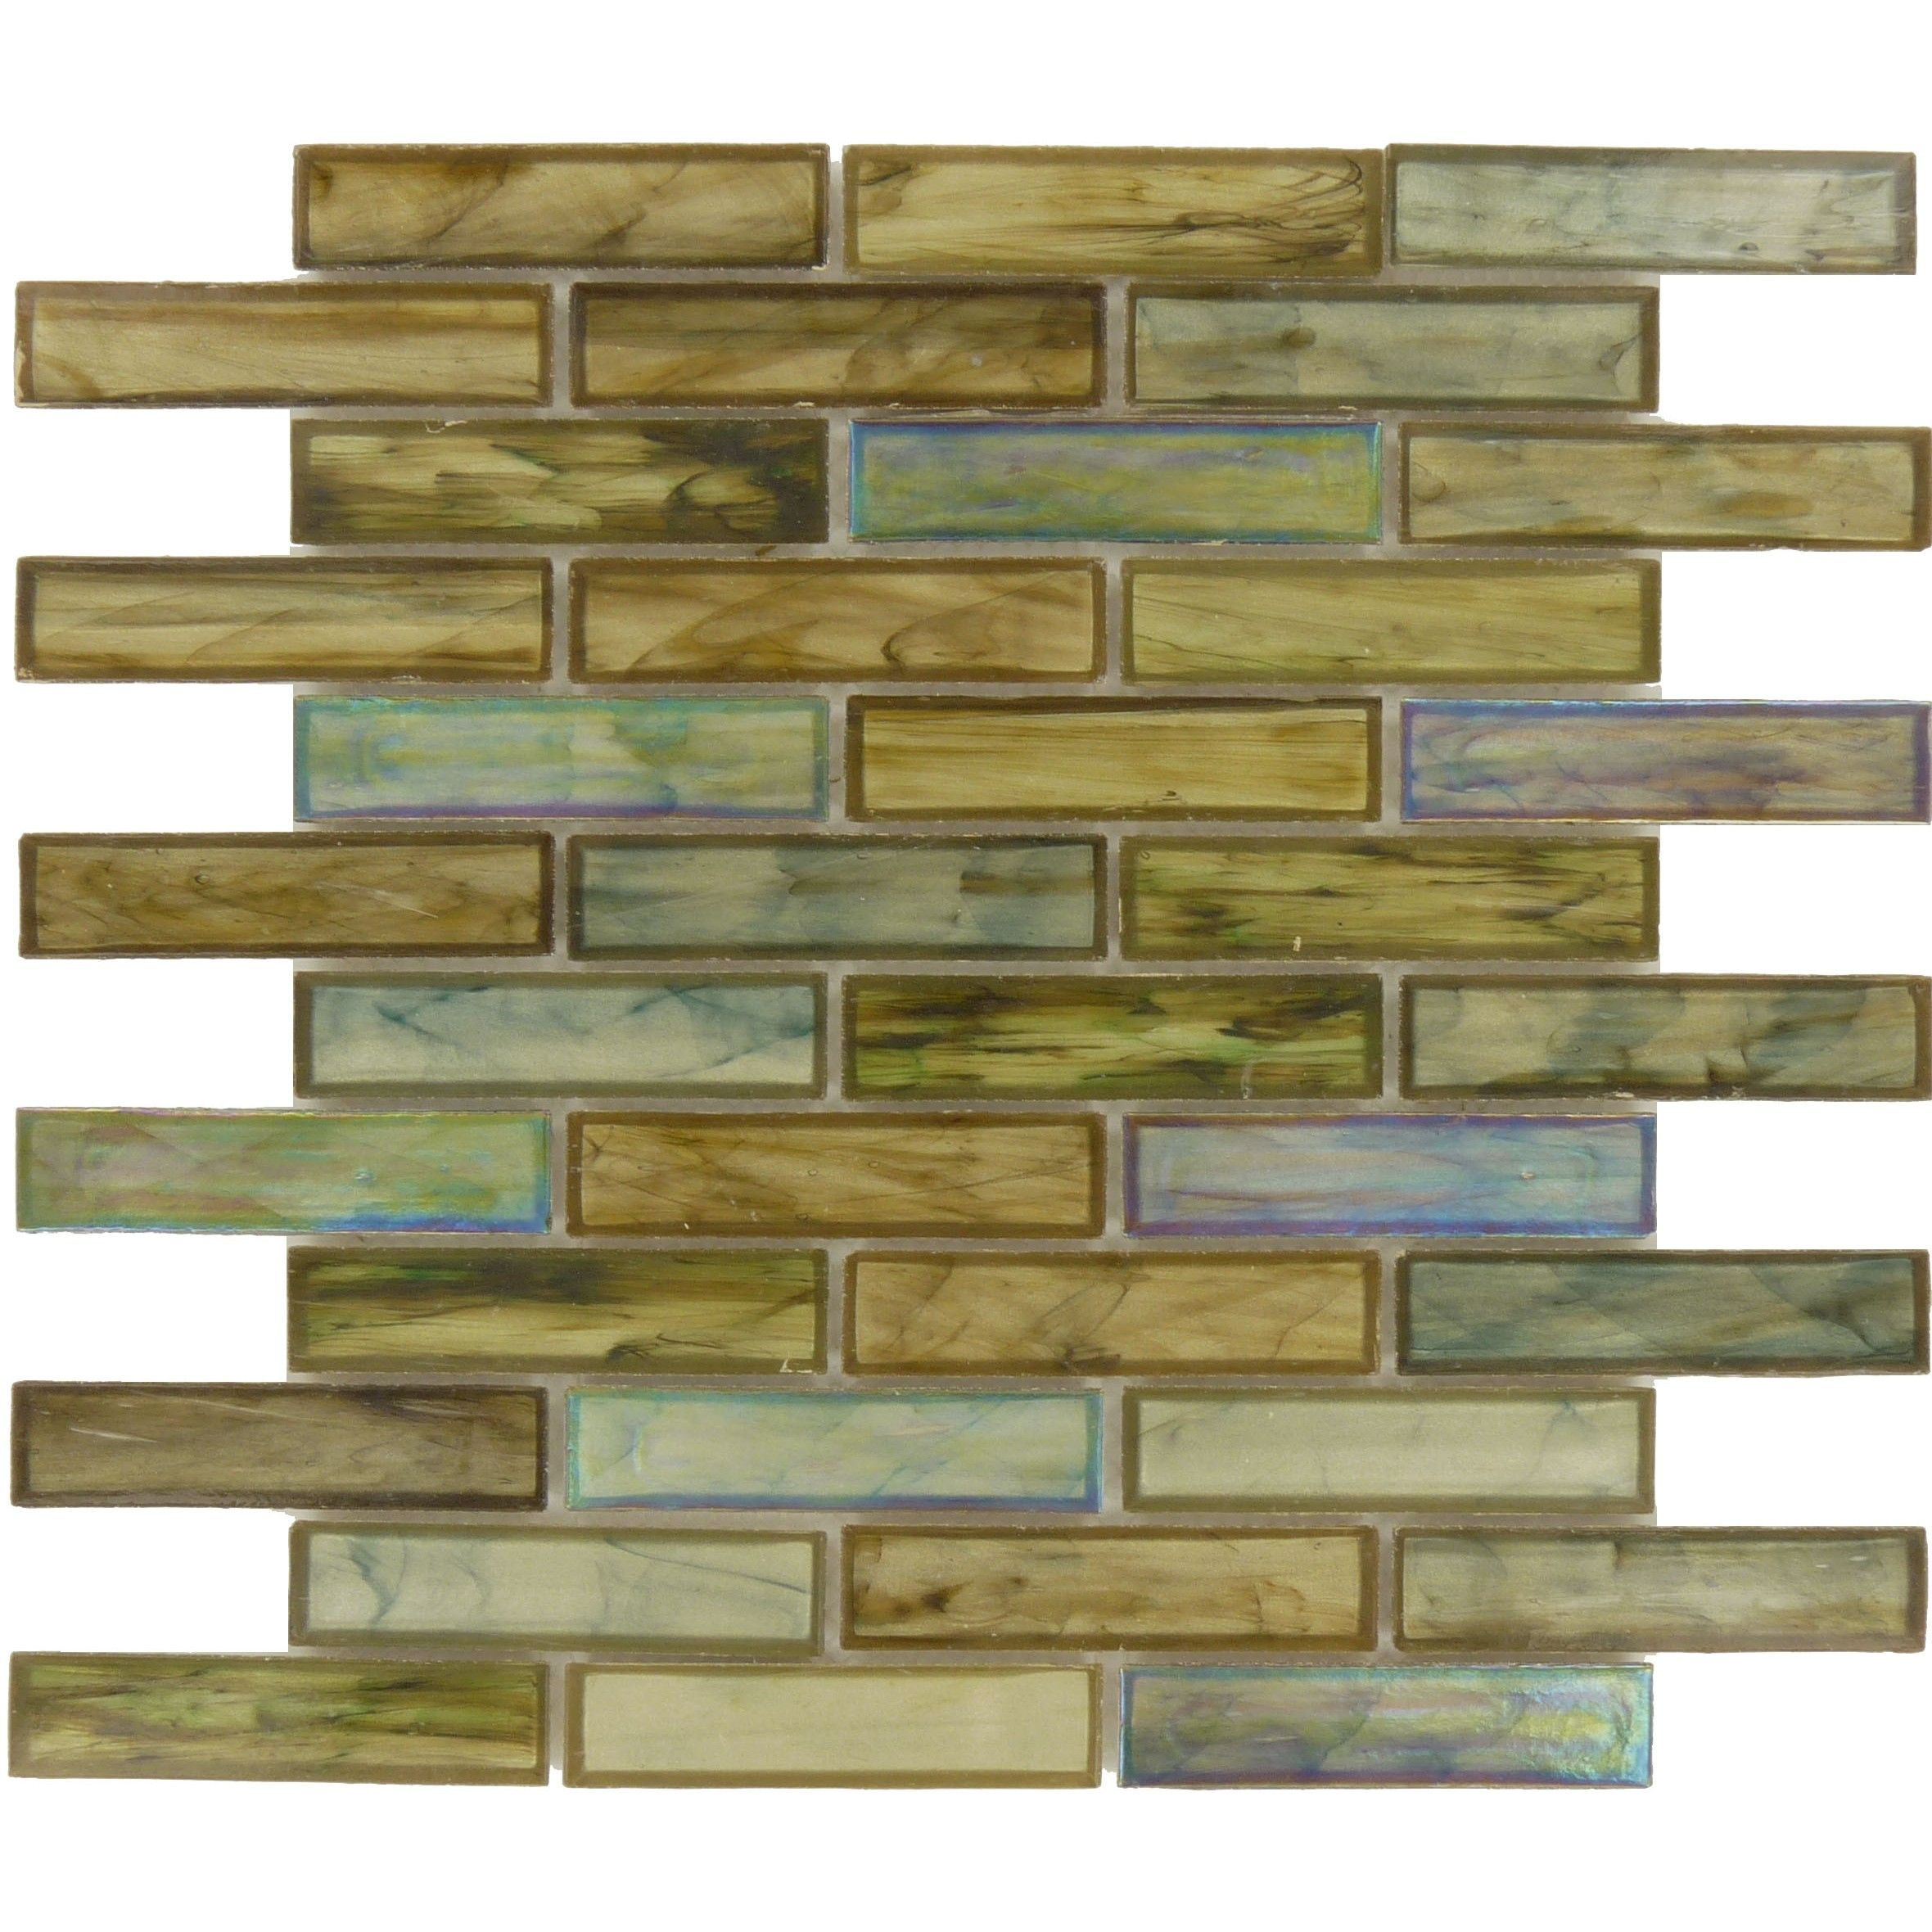 Tile Clear Glass Tiles Iridescent Tile X Glass Tile Kitchen - Clear glass tiles 4x4